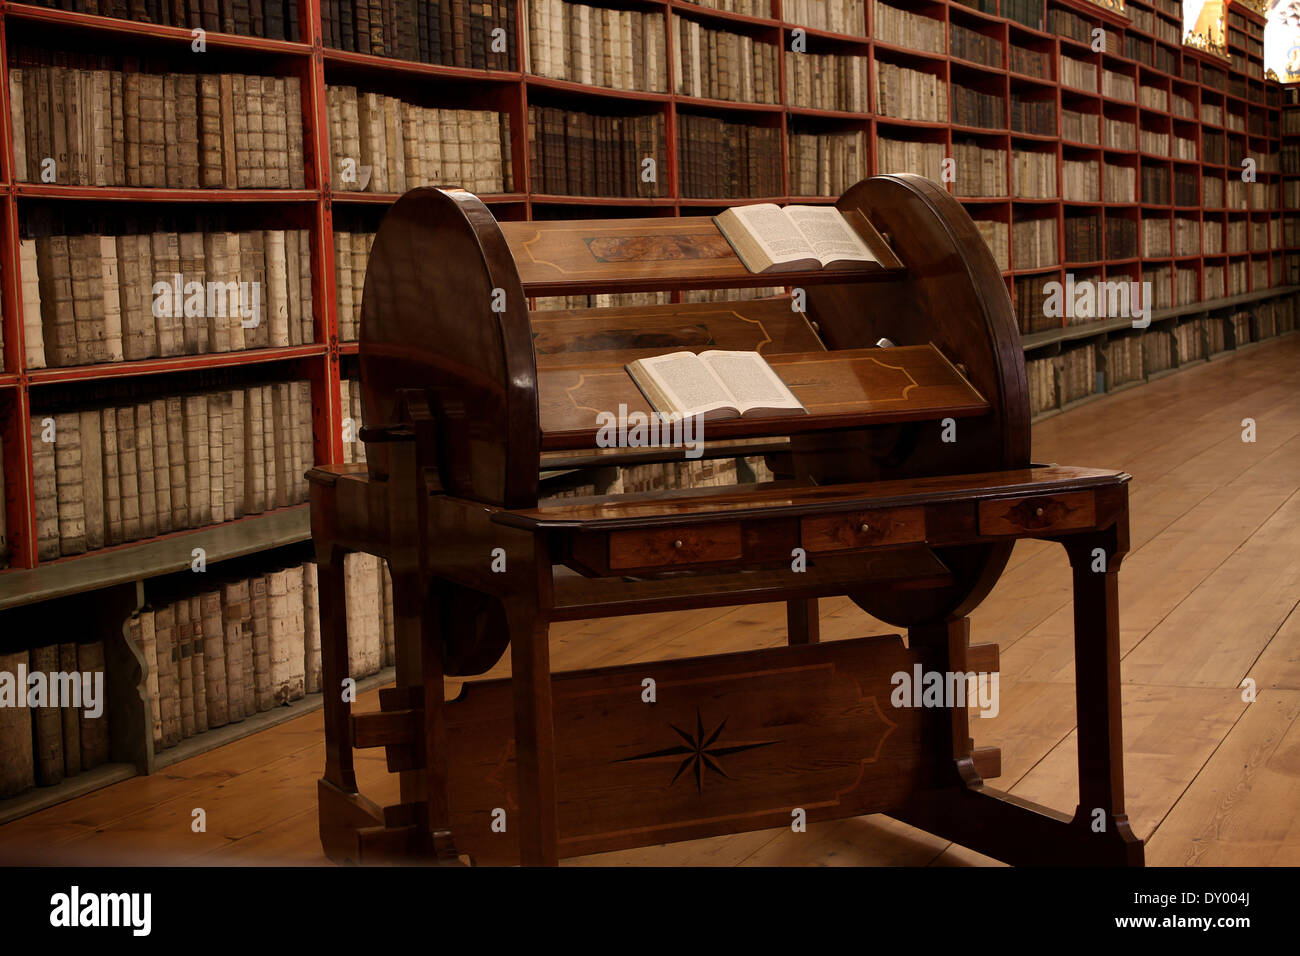 The compilation wheel of Strahov's monastery library in the Czech Republic, it was used to compile texts. - Stock Image